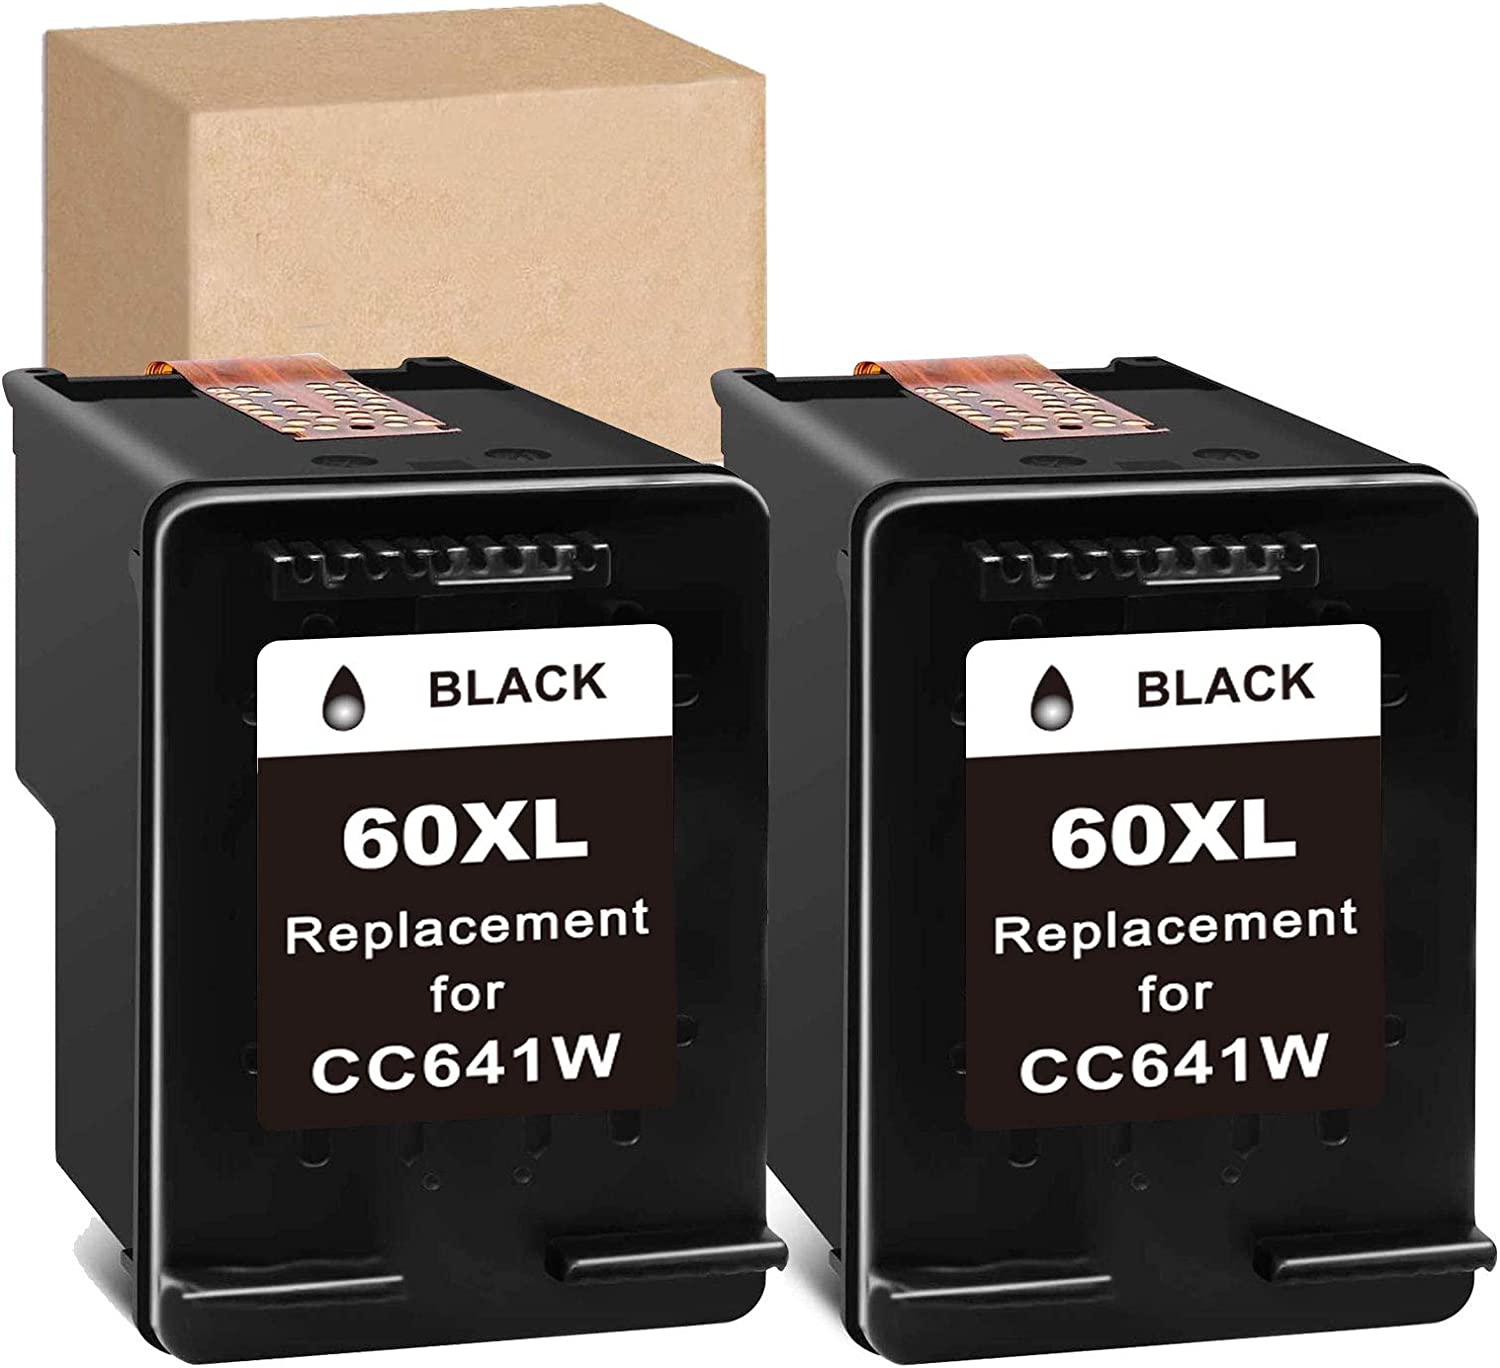 InkSpirit Remanufactured Ink Cartridge Replacement for HP 60 60XL Black Use with PhotoSmart C4700 C4795 C4600 D110a Envy 120 100 114 DeskJet F4235 F4580 F4400 F2430 F4440 F2480 Printer , 2 Pack